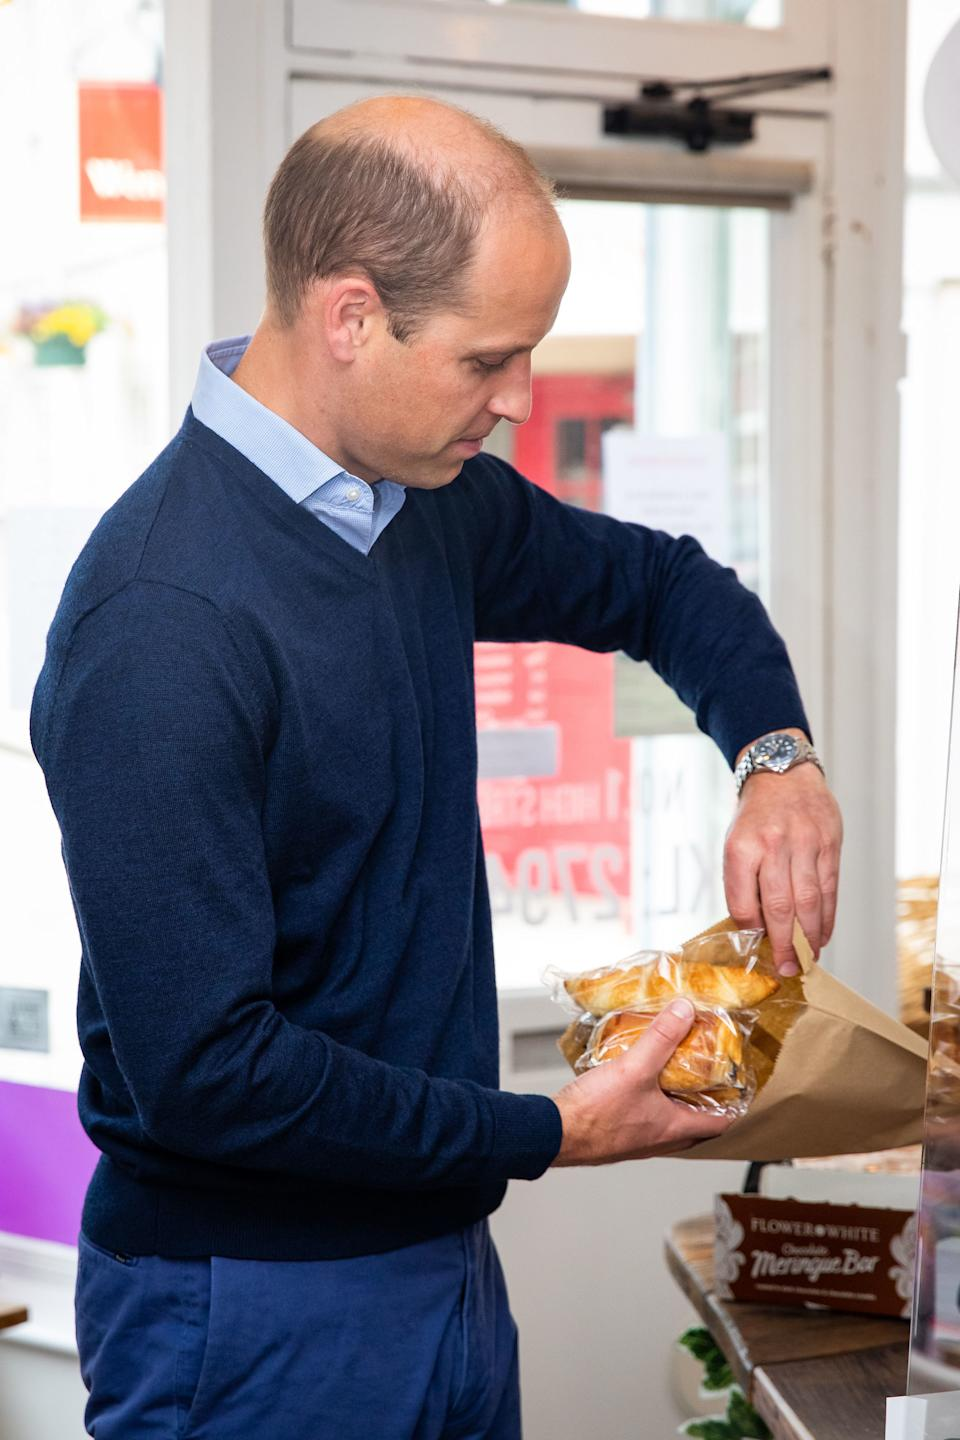 Britain's Prince William, Duke of Cambridge, purchases pain au chocolate during a visit to Smiths the Bakers in the High Street in King's Lynn, eastern England on on June 19, 2020. - The Duke visited the independent business to hear about the impact of the Covid-19 pandemic. (Photo by Aaron Chown / POOL / AFP) (Photo by AARON CHOWN/POOL/AFP via Getty Images)